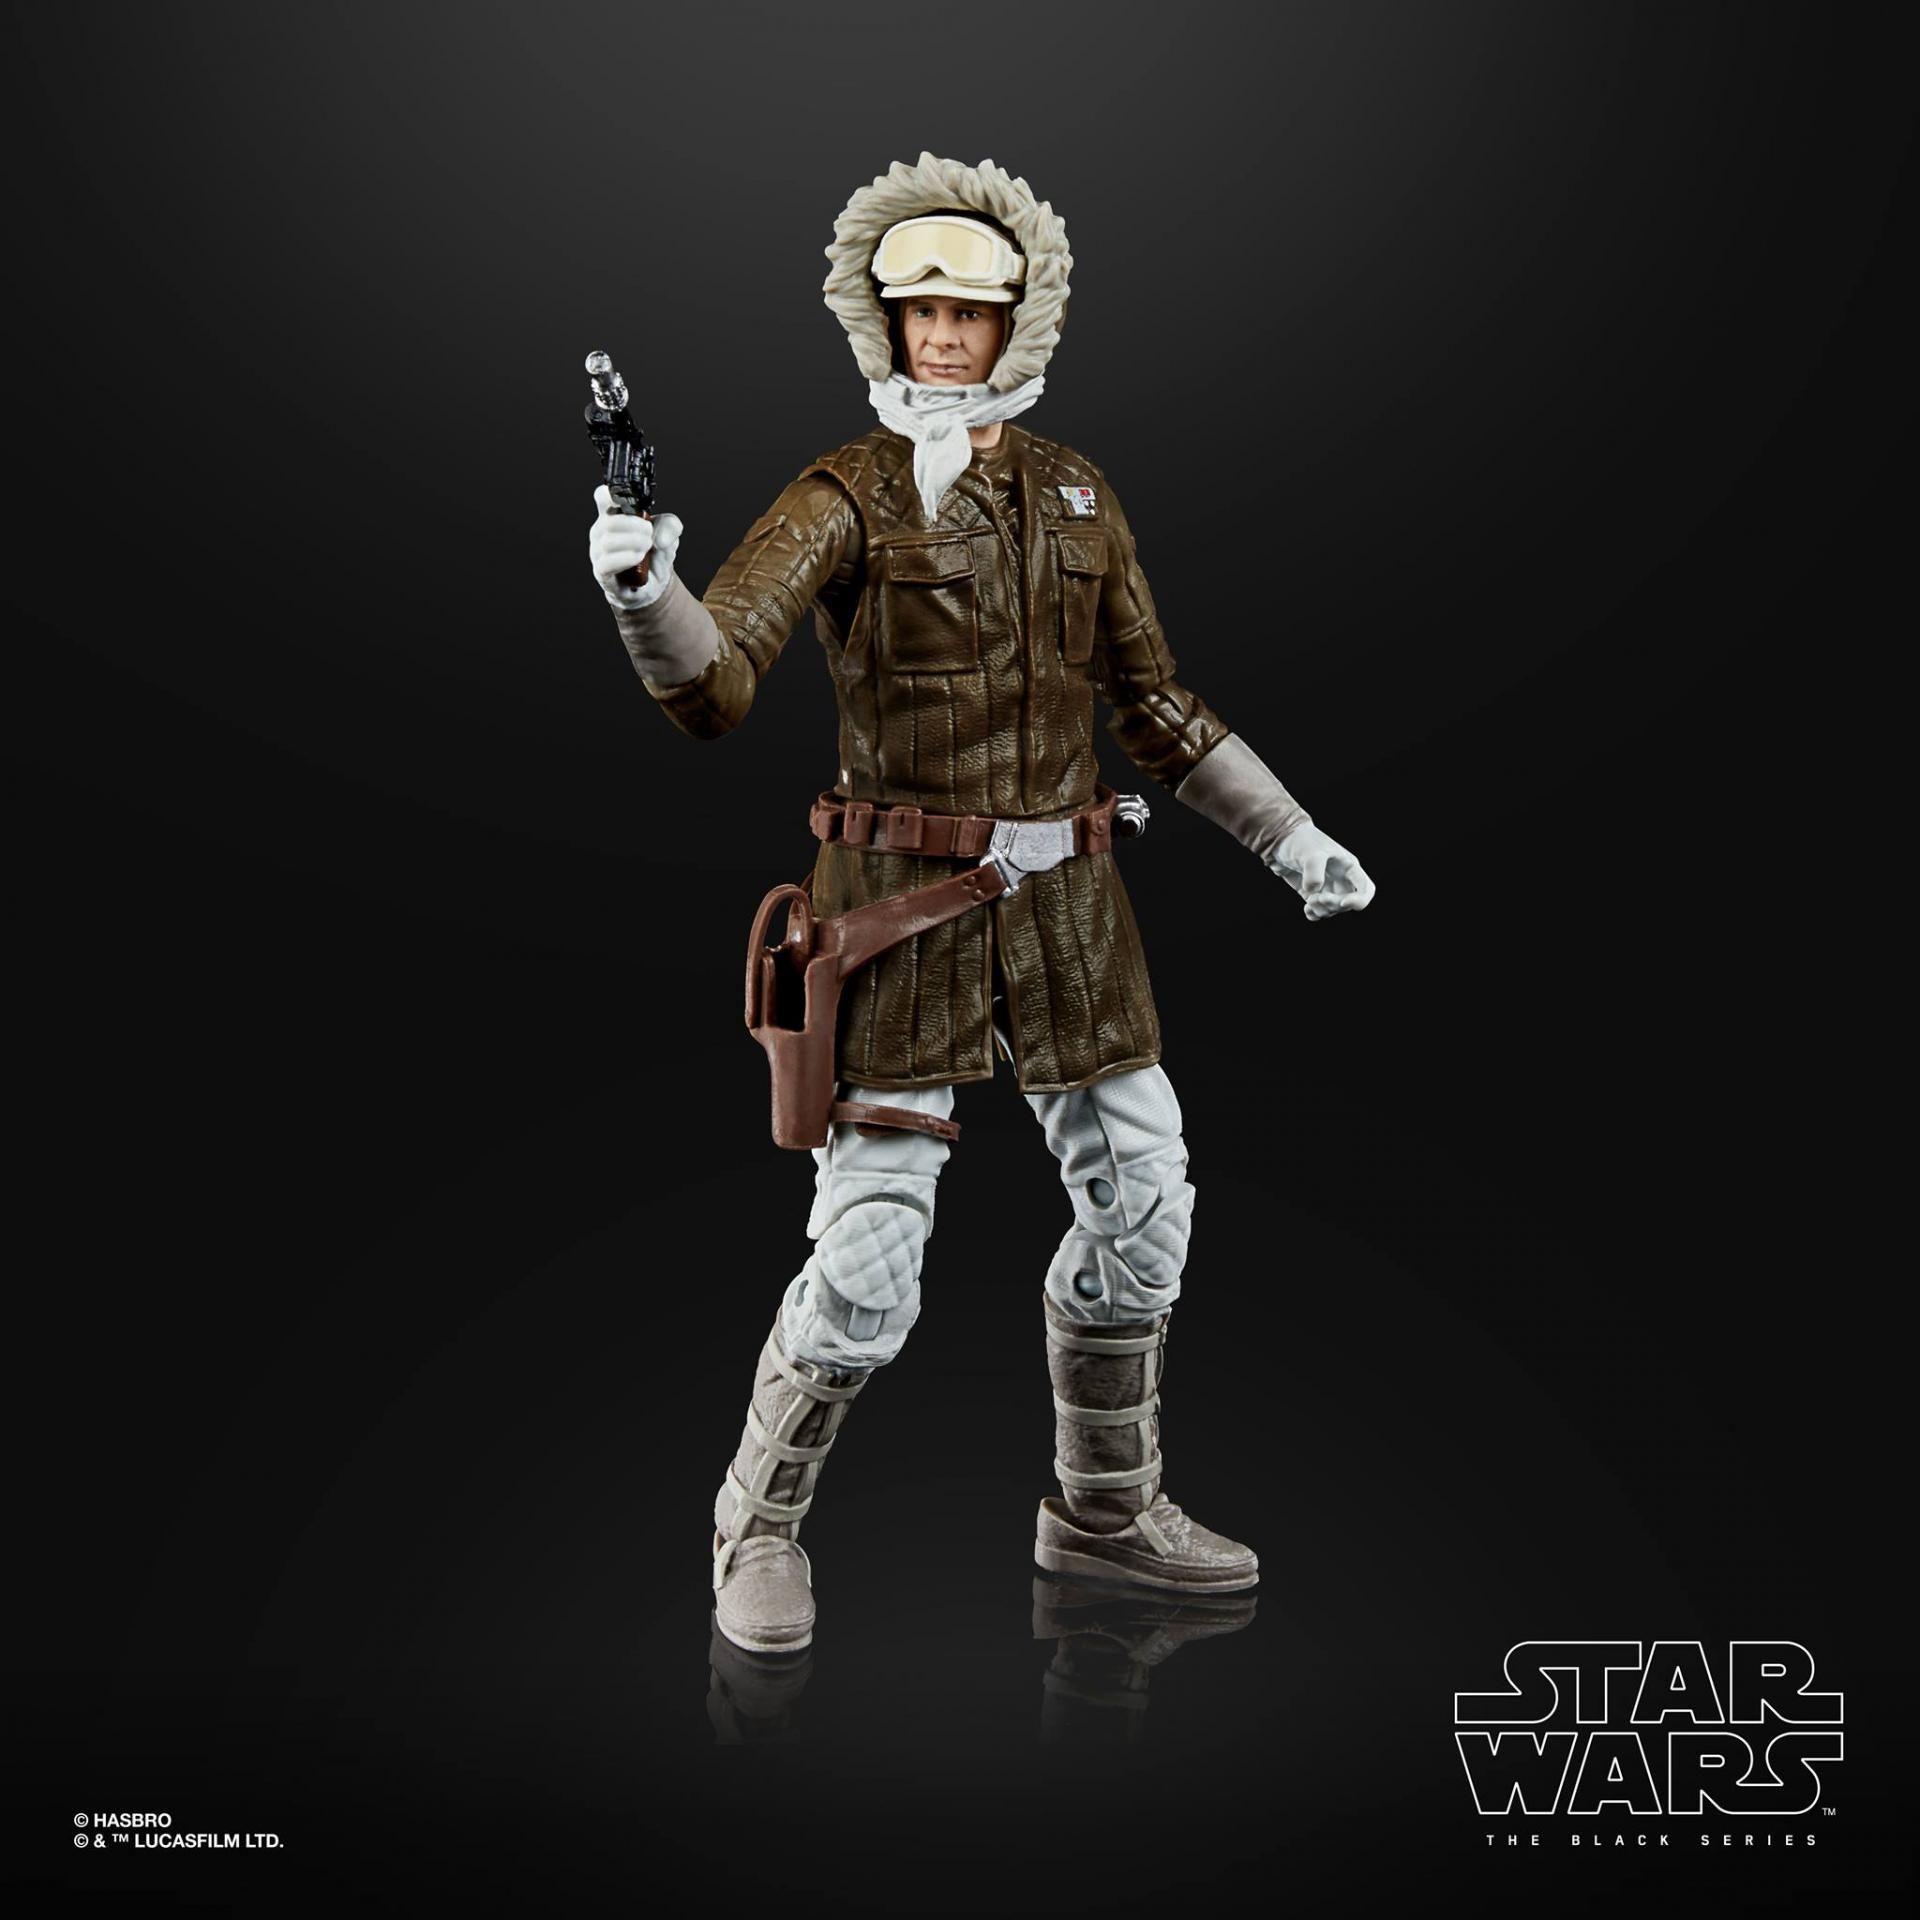 Star wars the black series archive han solo hoth 15cm1